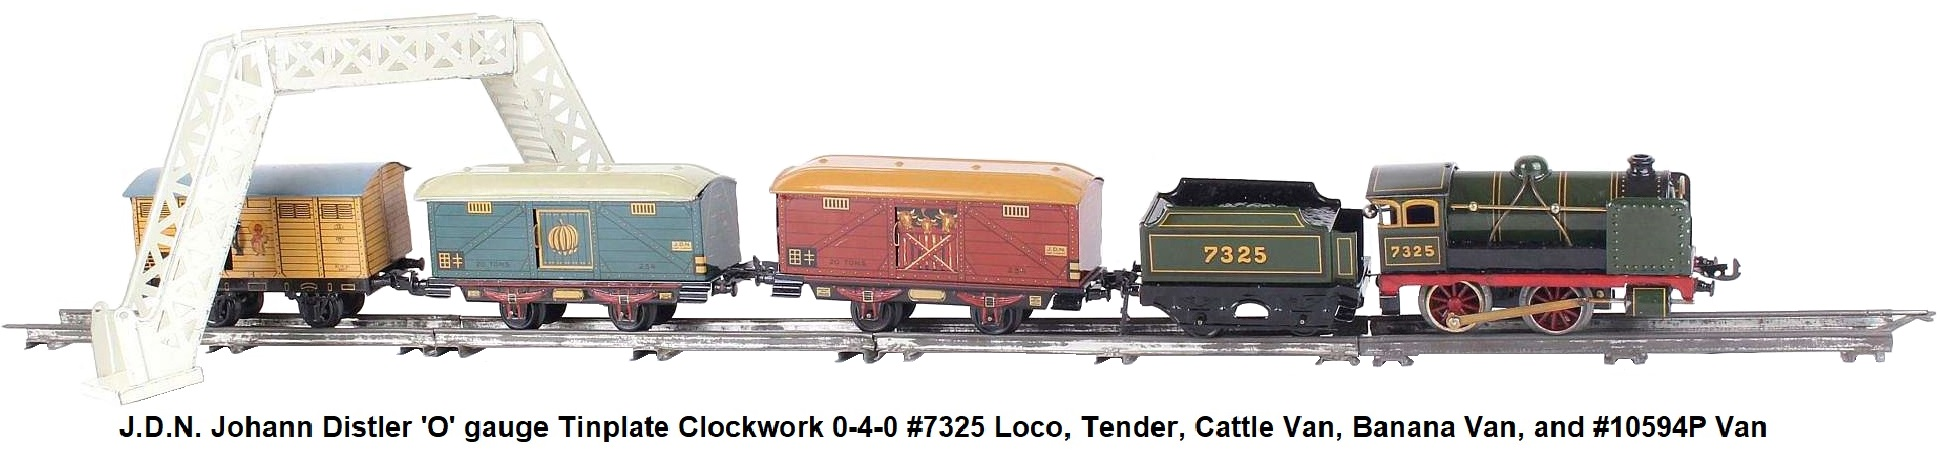 J.D.N. Johann Distler 'O' gauge tinplate lithographed clockwork freight train set with #7325 steam outline locomotive and tender, two distinctive freight wagons, one with bananas, one with three cows, and a third wagon #10594P depicting a Mexican holding bananas